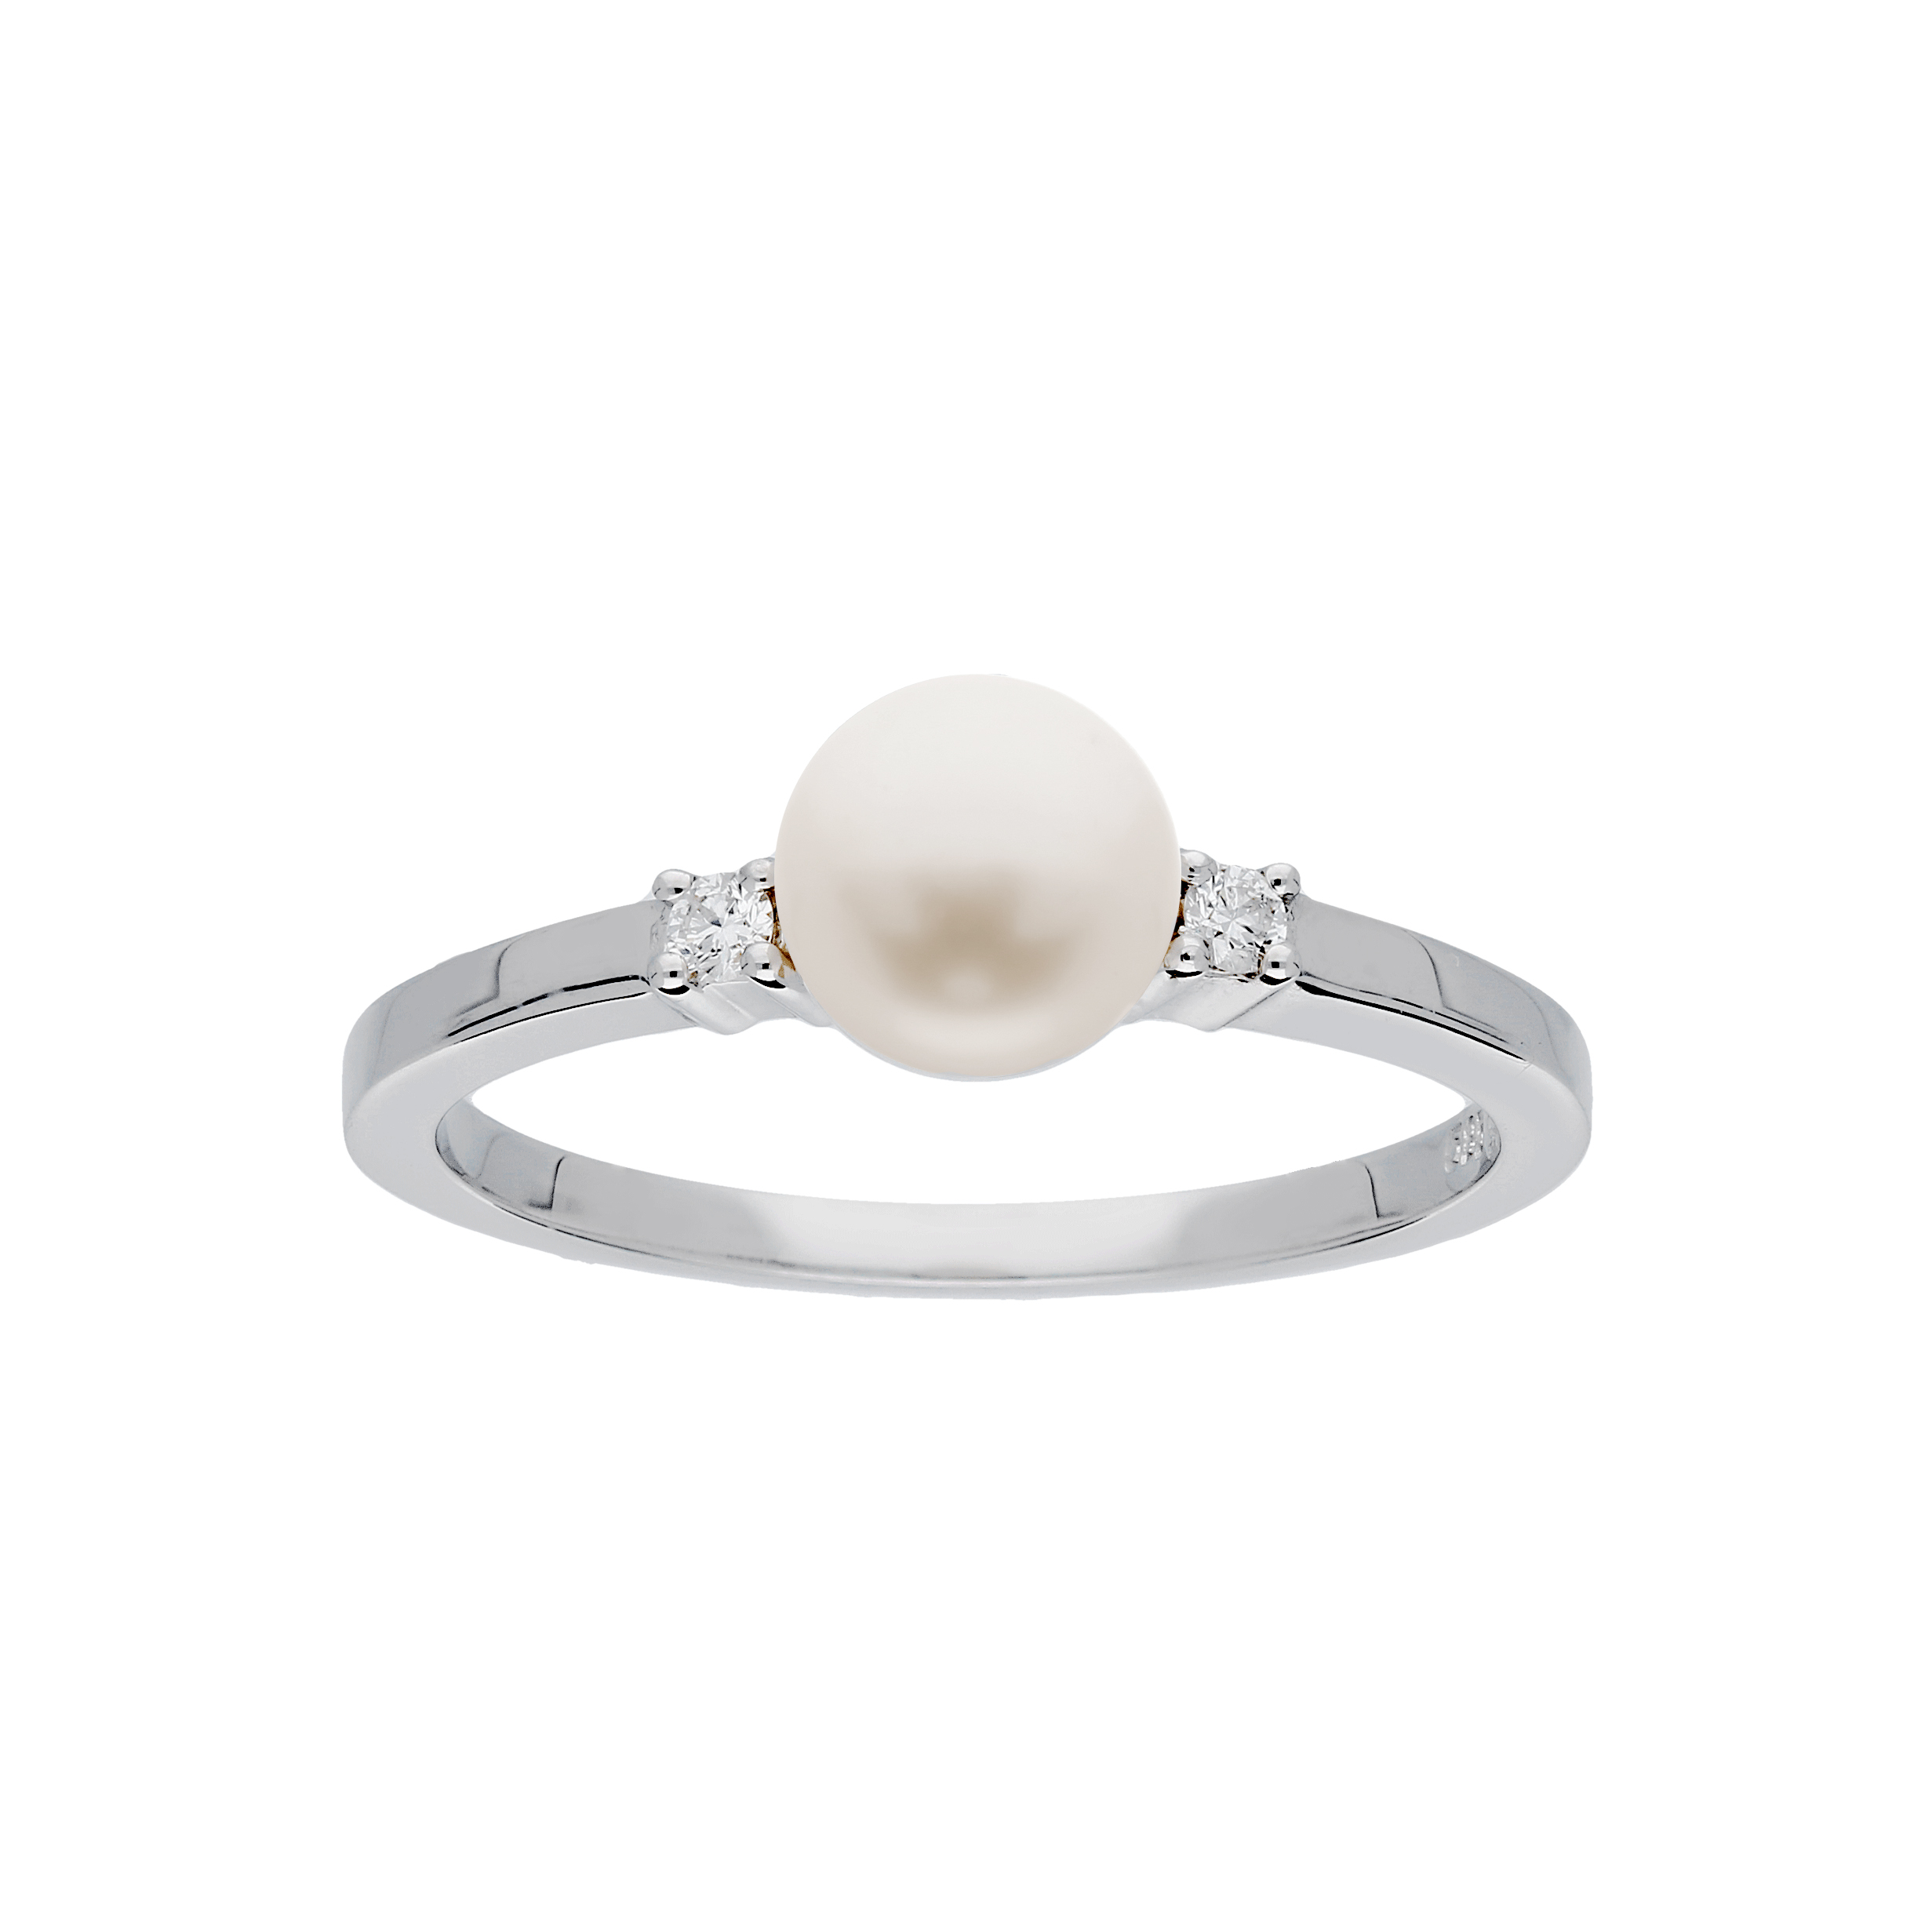 Glow Witgouden Ring Glanzend Parel Diamant 2 0.04ct G si 214.3025.58